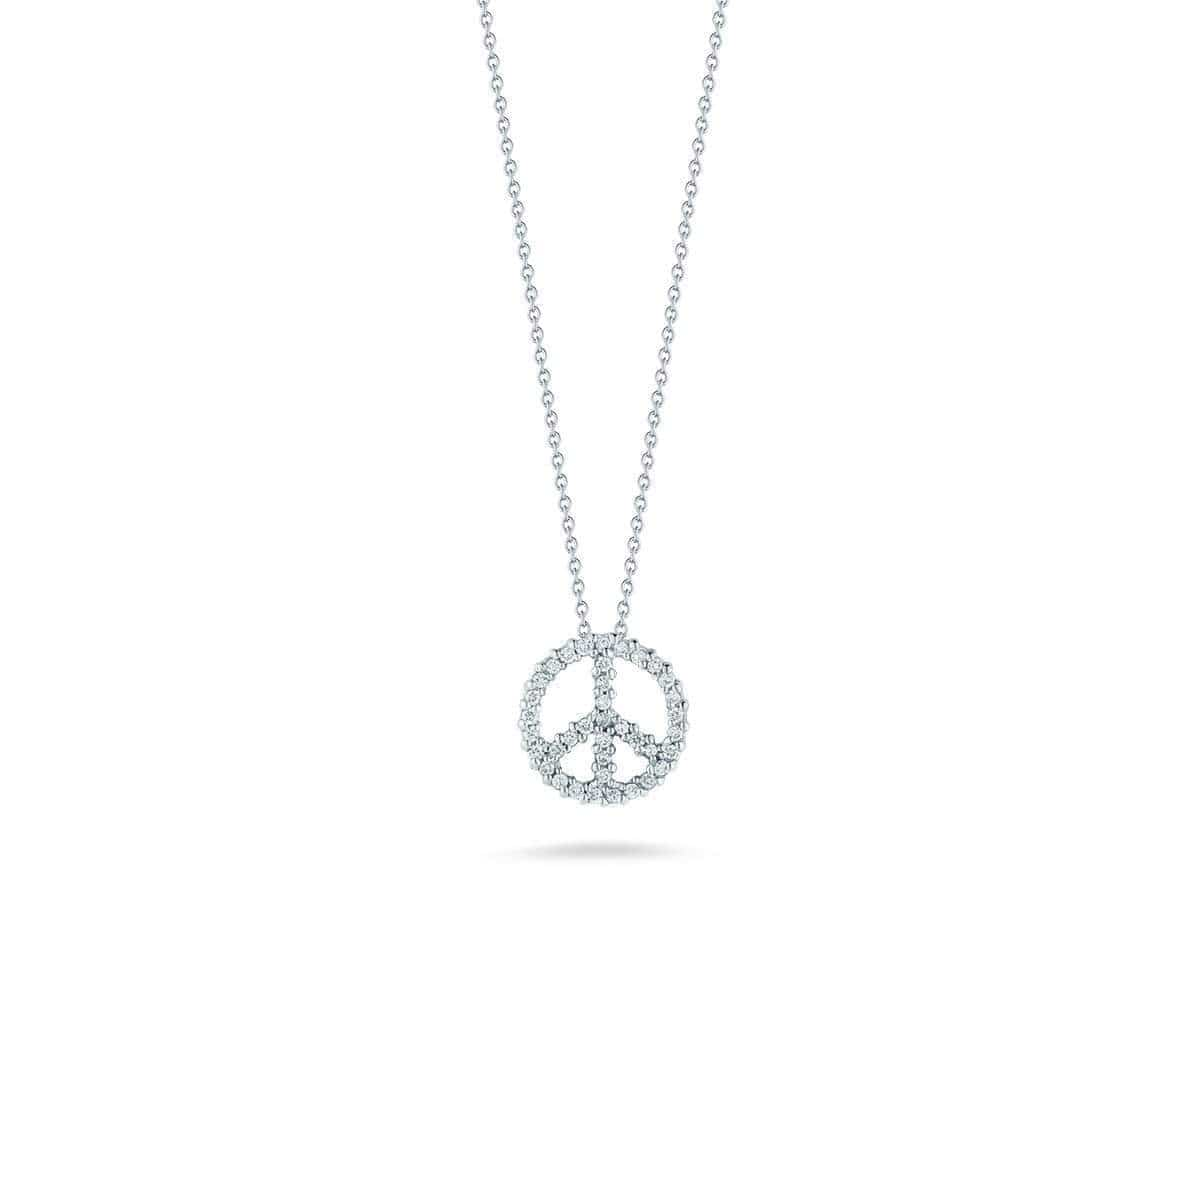 18k White Gold & Diamond Peace Necklace - 001683AWCHX0-Roberto Coin-Renee Taylor Gallery